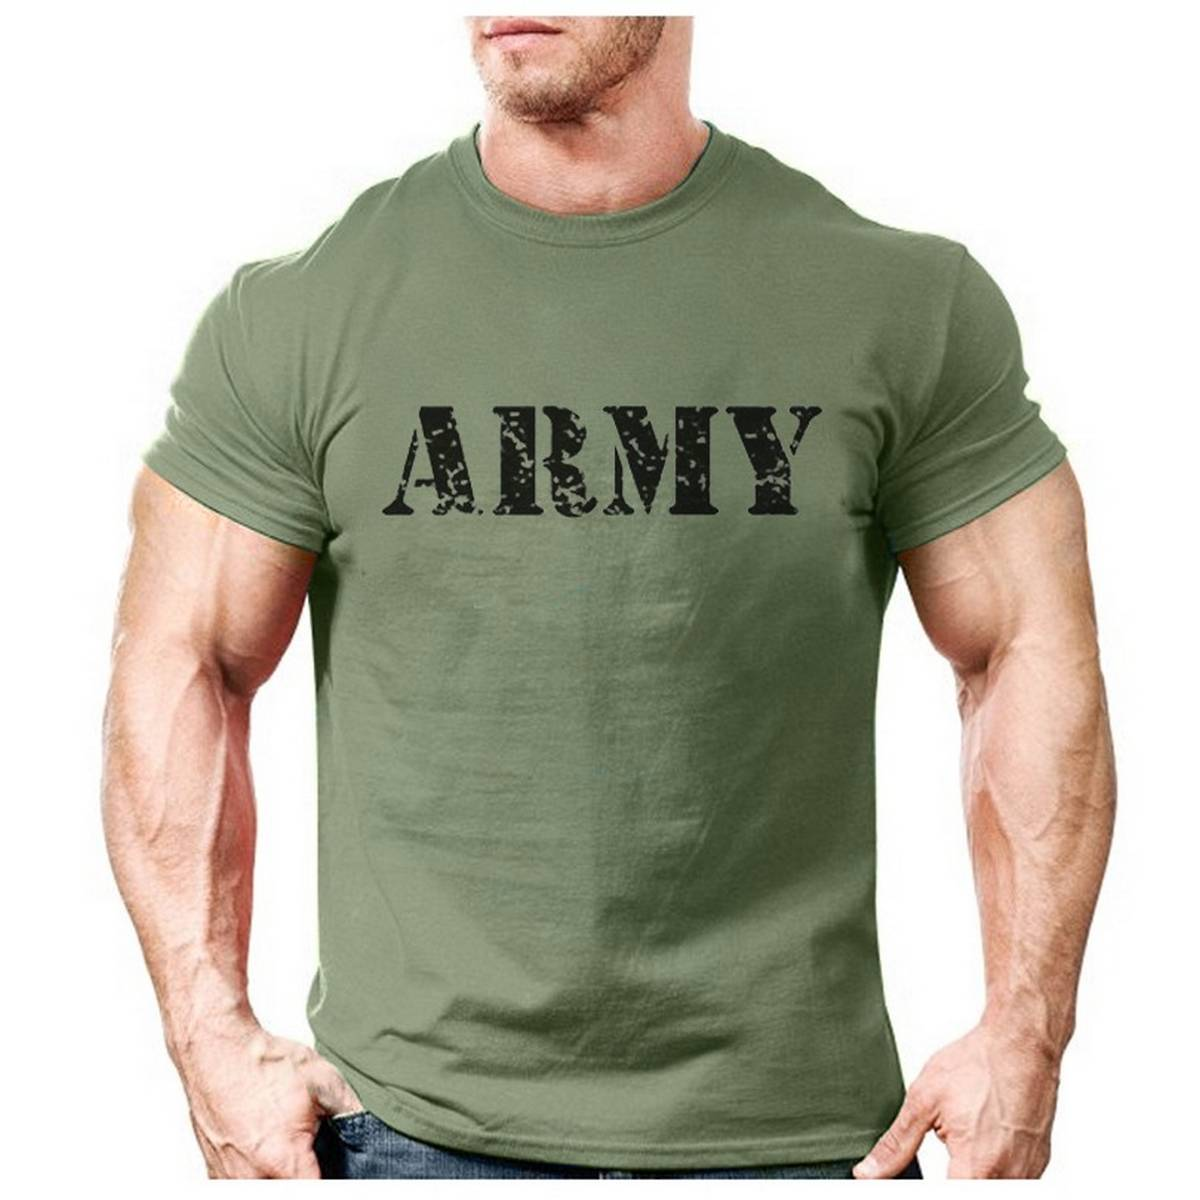 Men's Commando Style  T Shirt T-Shirt Tee   Cotton Sweat T-Shirt Half Sleeves   Army Printed  Gym Wear Suit for Boys & Girls